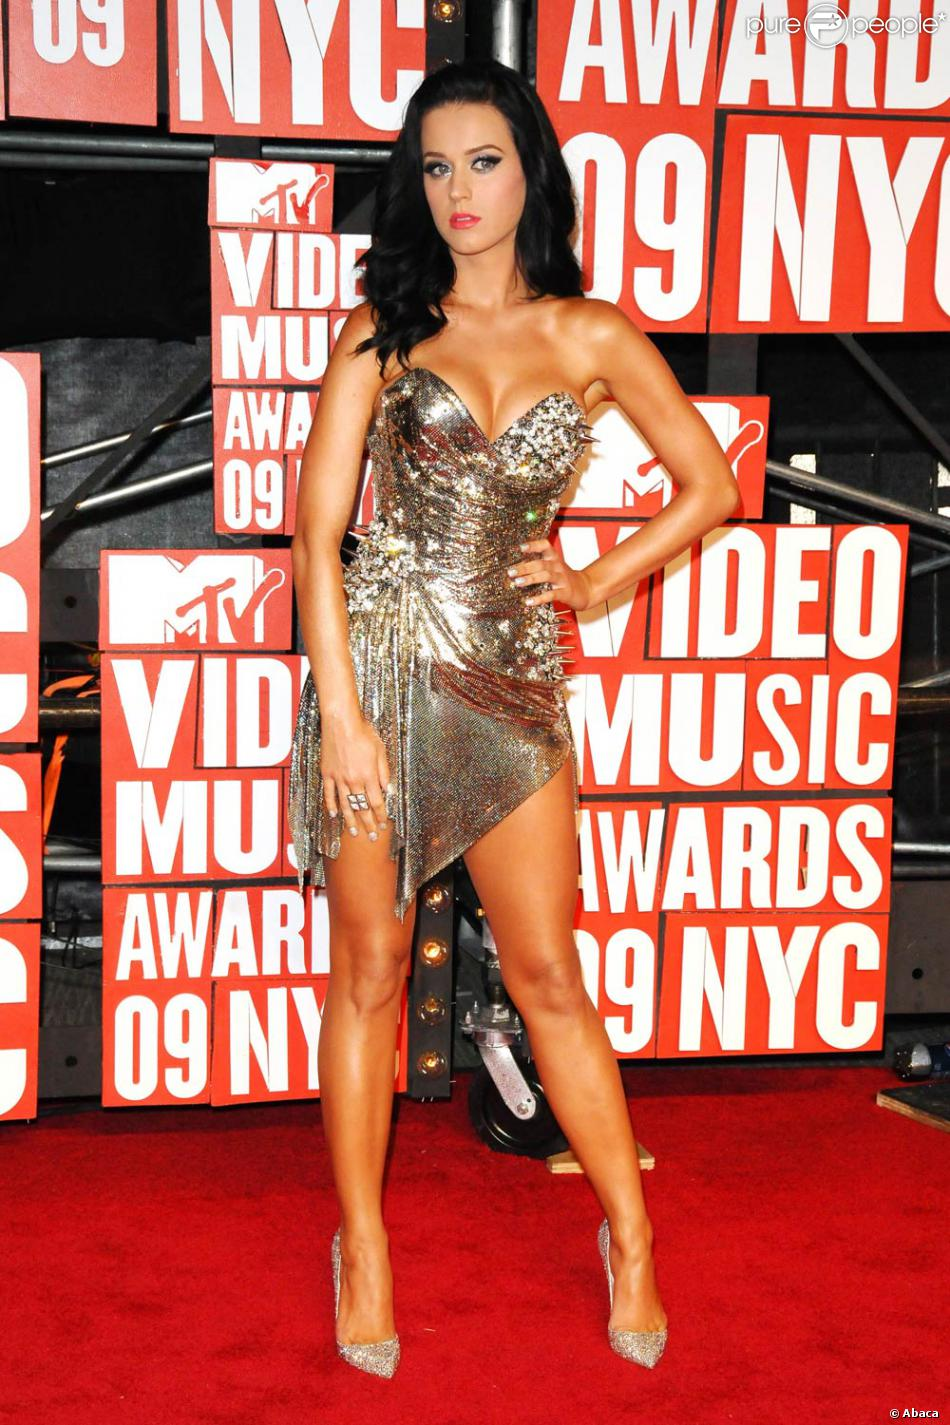 http://static1.purepeople.com/articles/6/39/83/6/@/280586-mtv-video-music-awards-2009-le-13-950x0-4.jpg